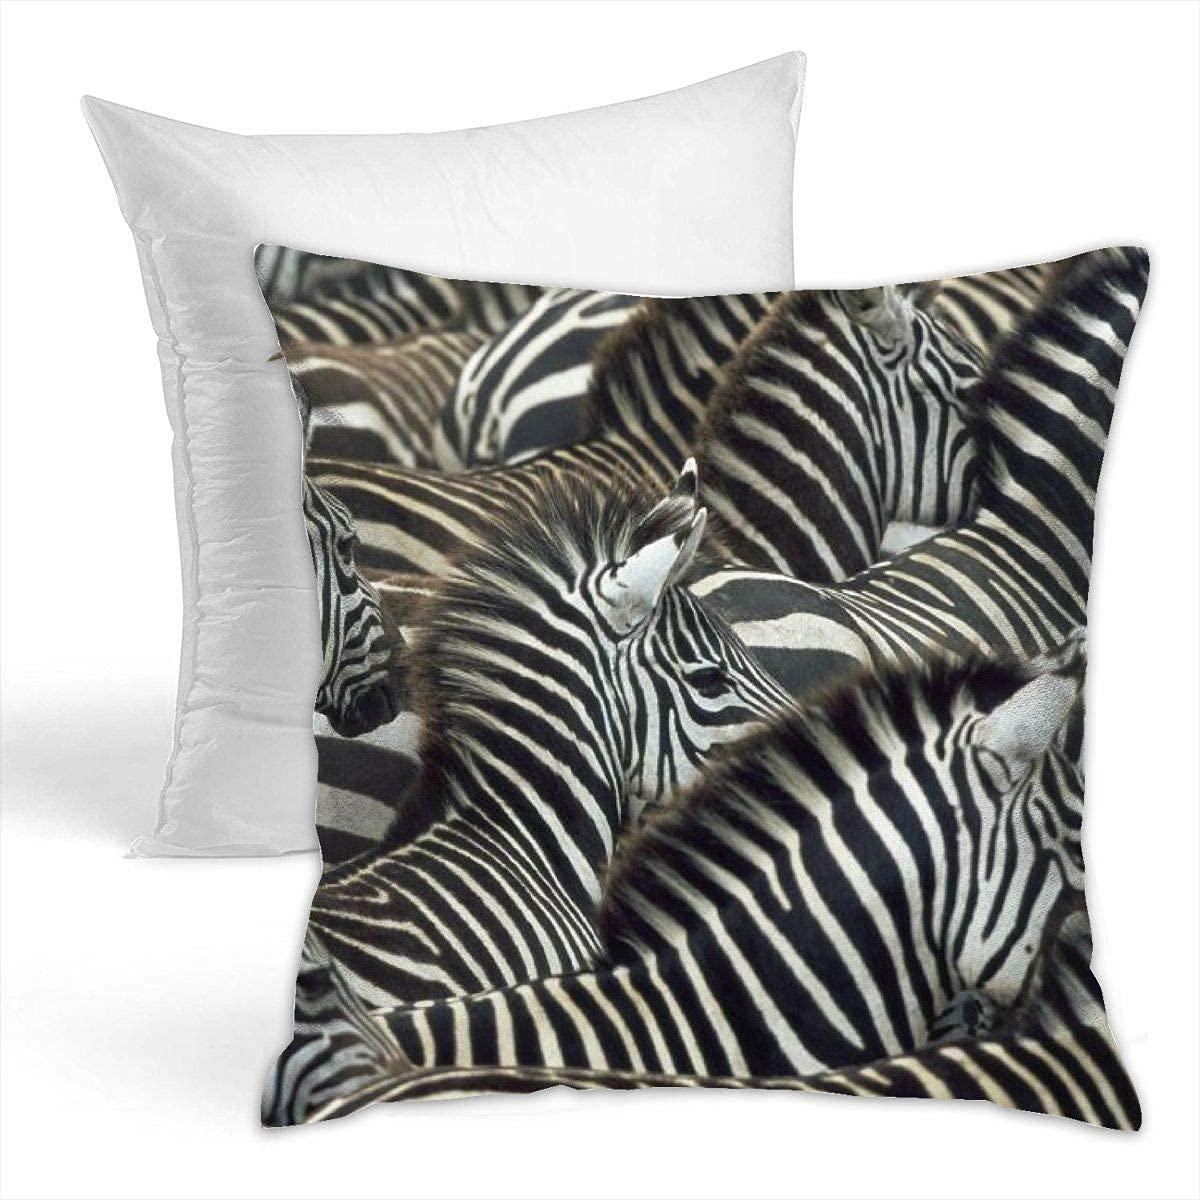 QIAOQIAO Animal Zebra Decorative Throw Courier shipping free shipping Bed for Pillow Couch Cush High order